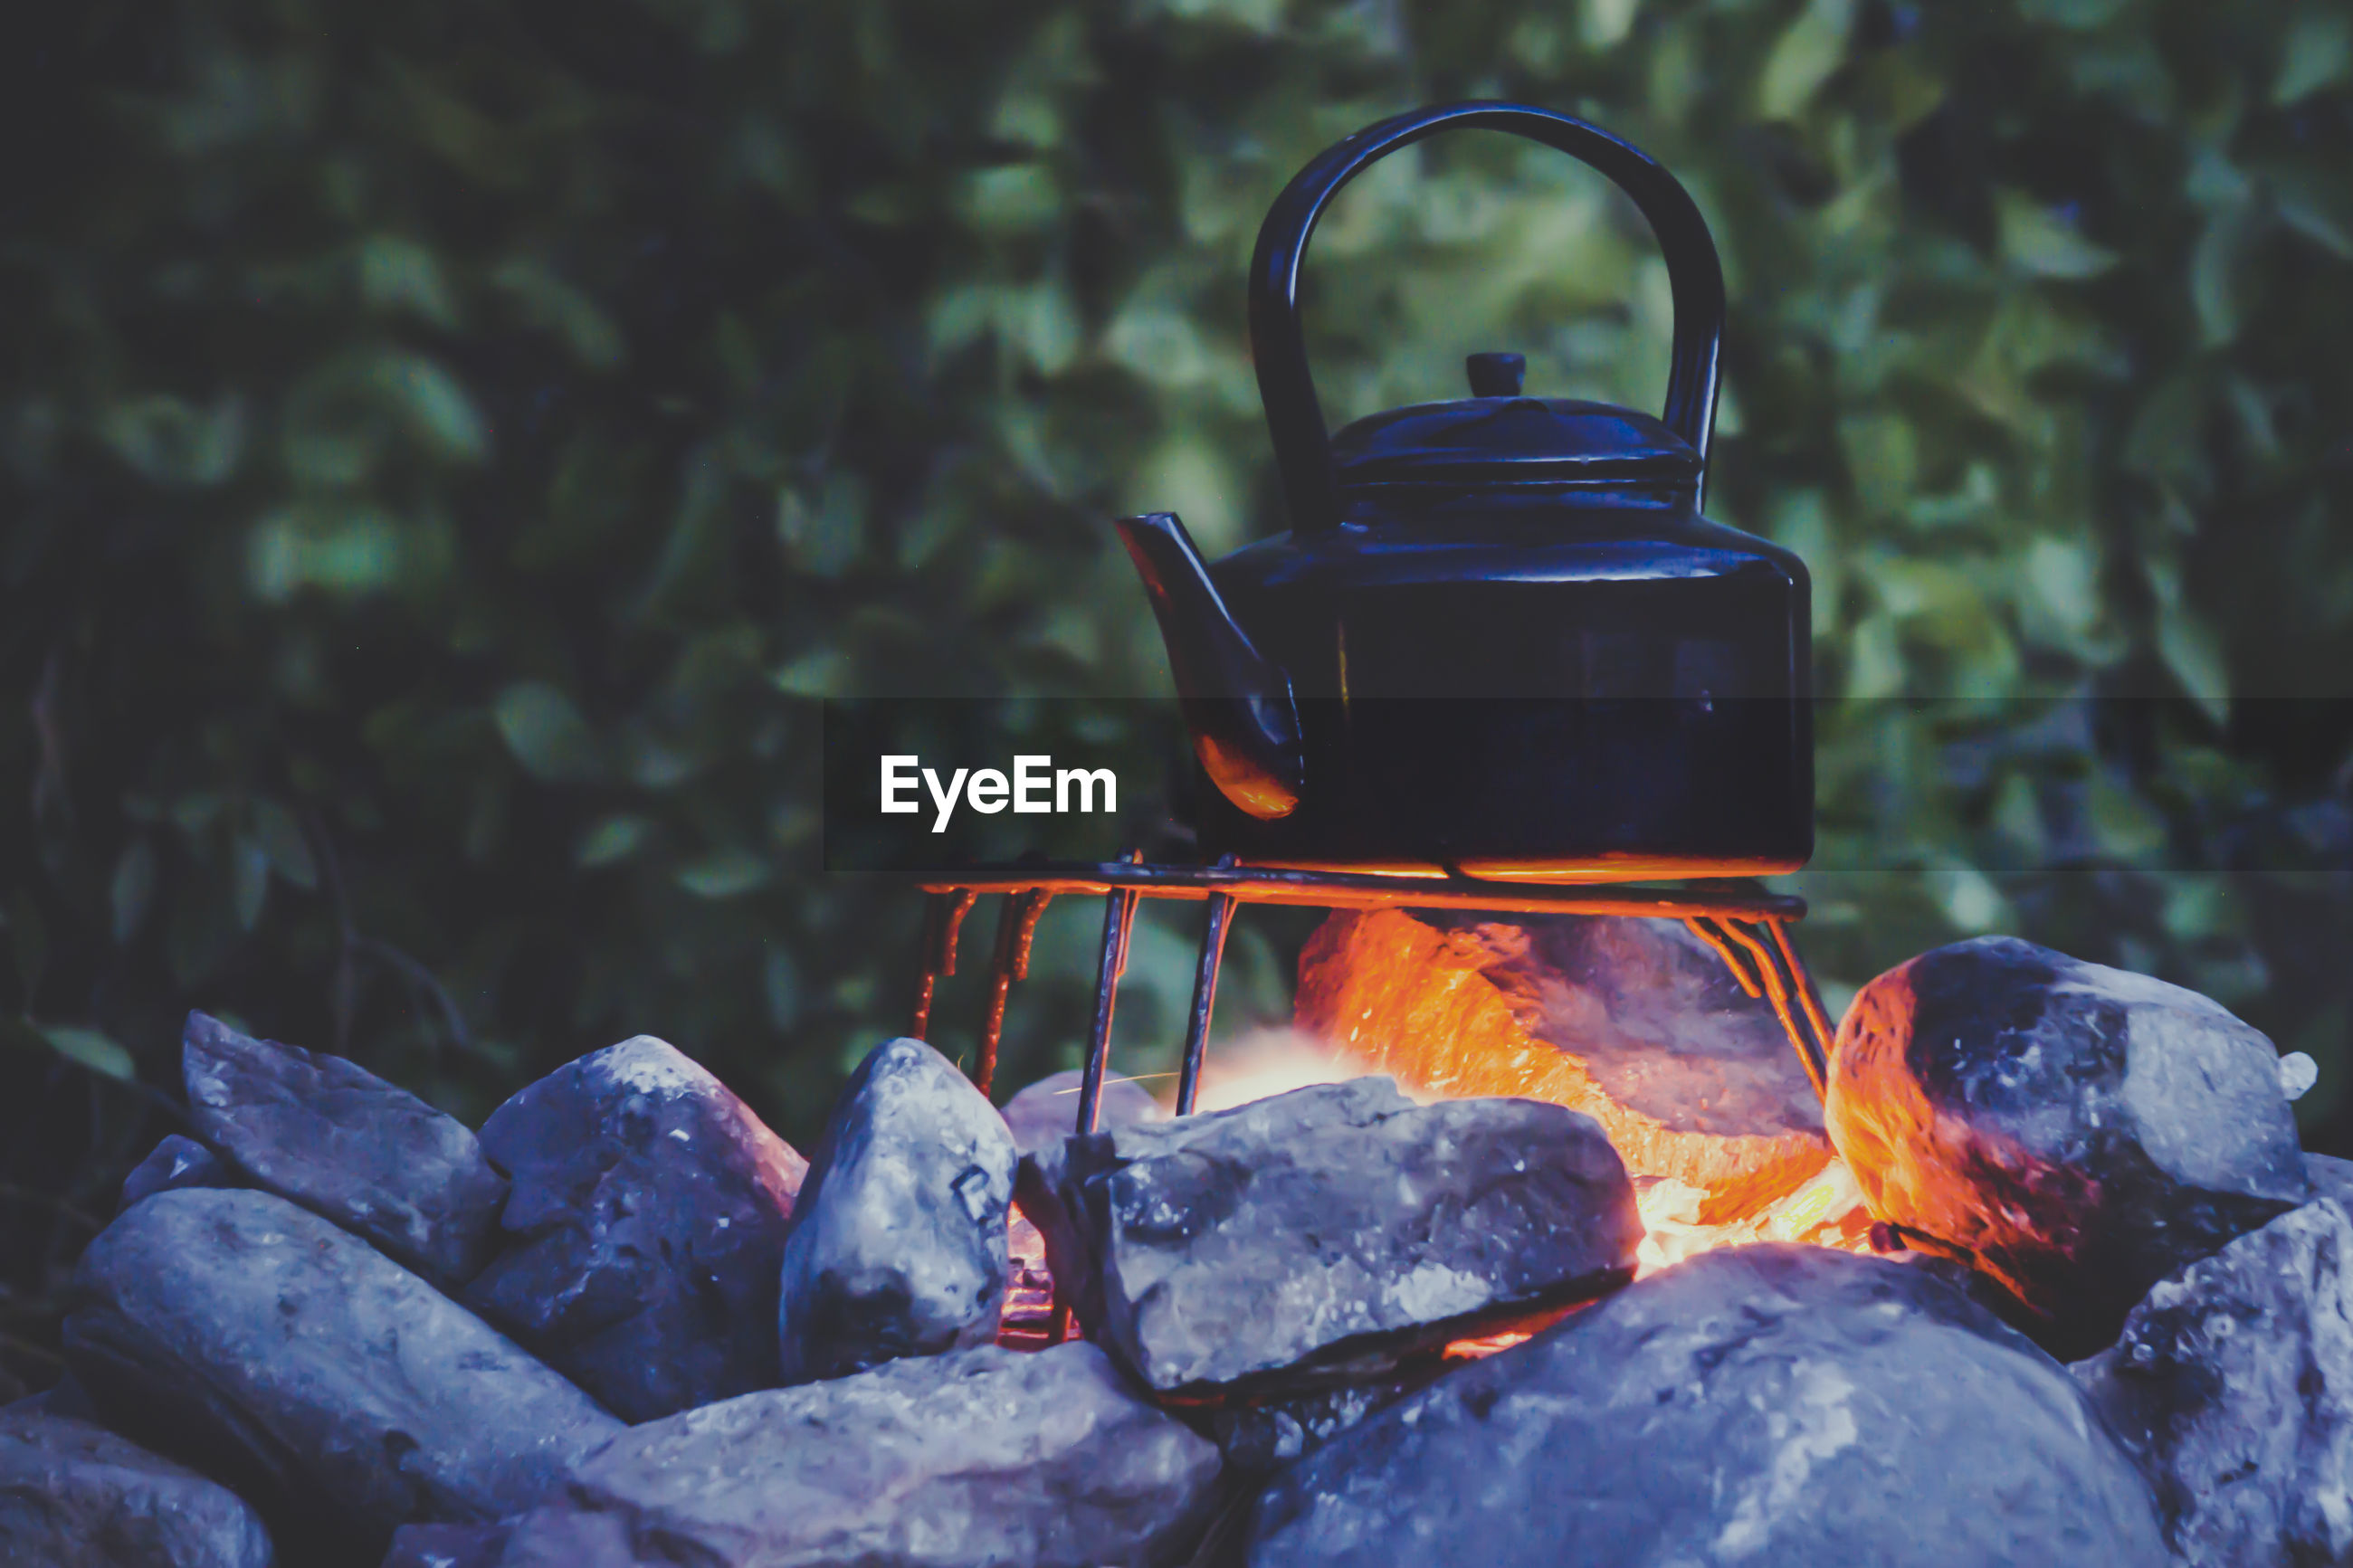 Adventure cooking during camping metal kettle boiling on a campfire, surrounded by stones